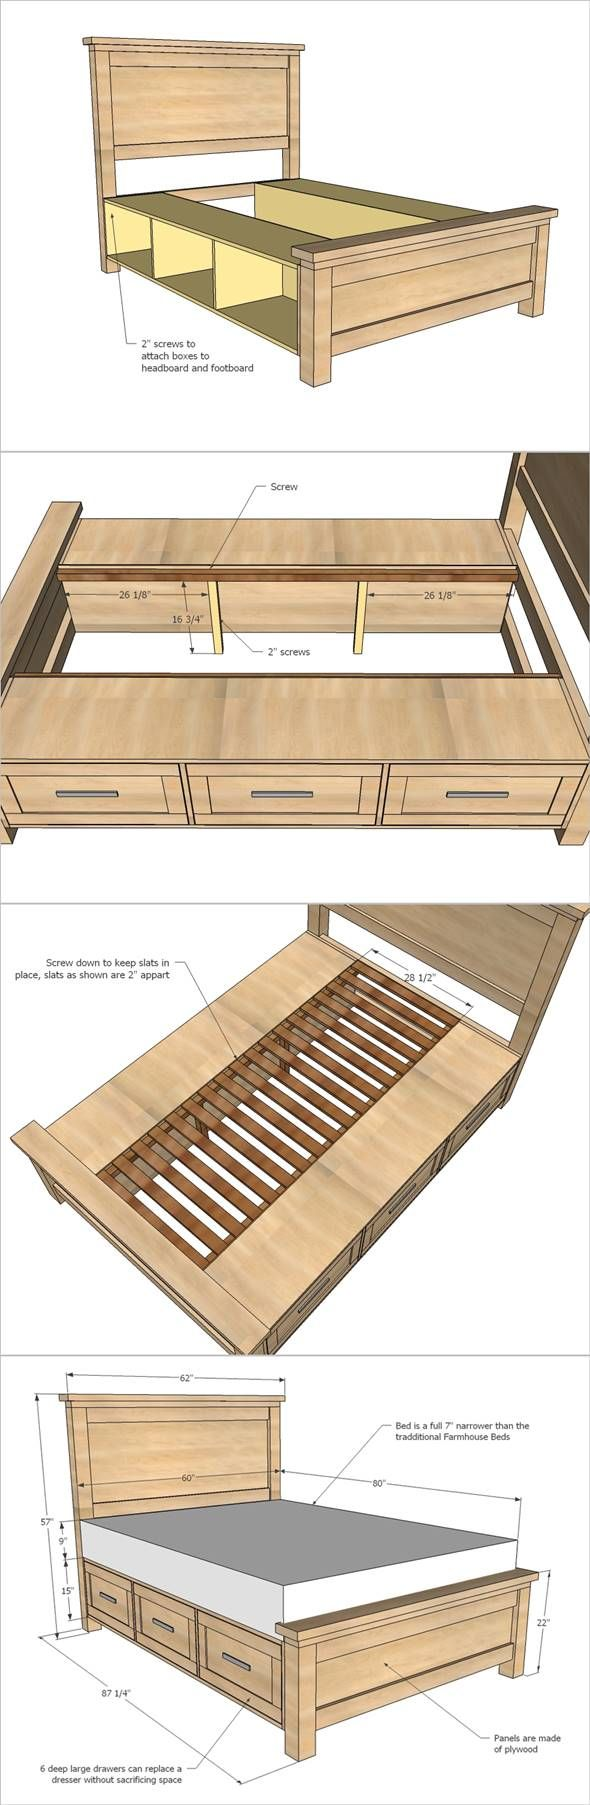 Creative Ideas - How To Build A Farmhouse Storage Bed with Drawers ...